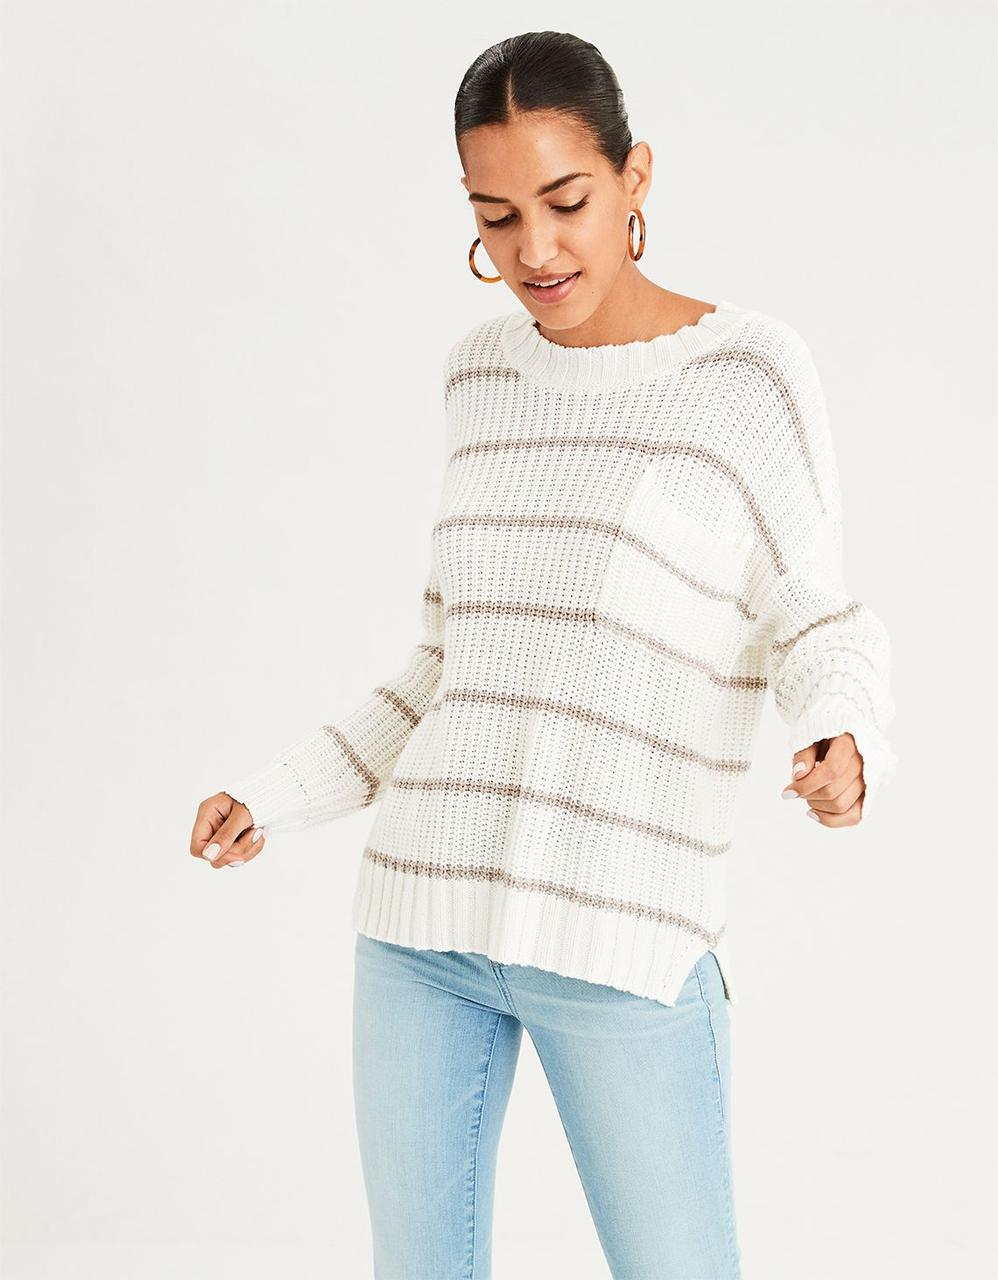 c63585651a93 American Eagle Sweaters, AE STRIPE POCKET CREW NECK SWEATER for ...